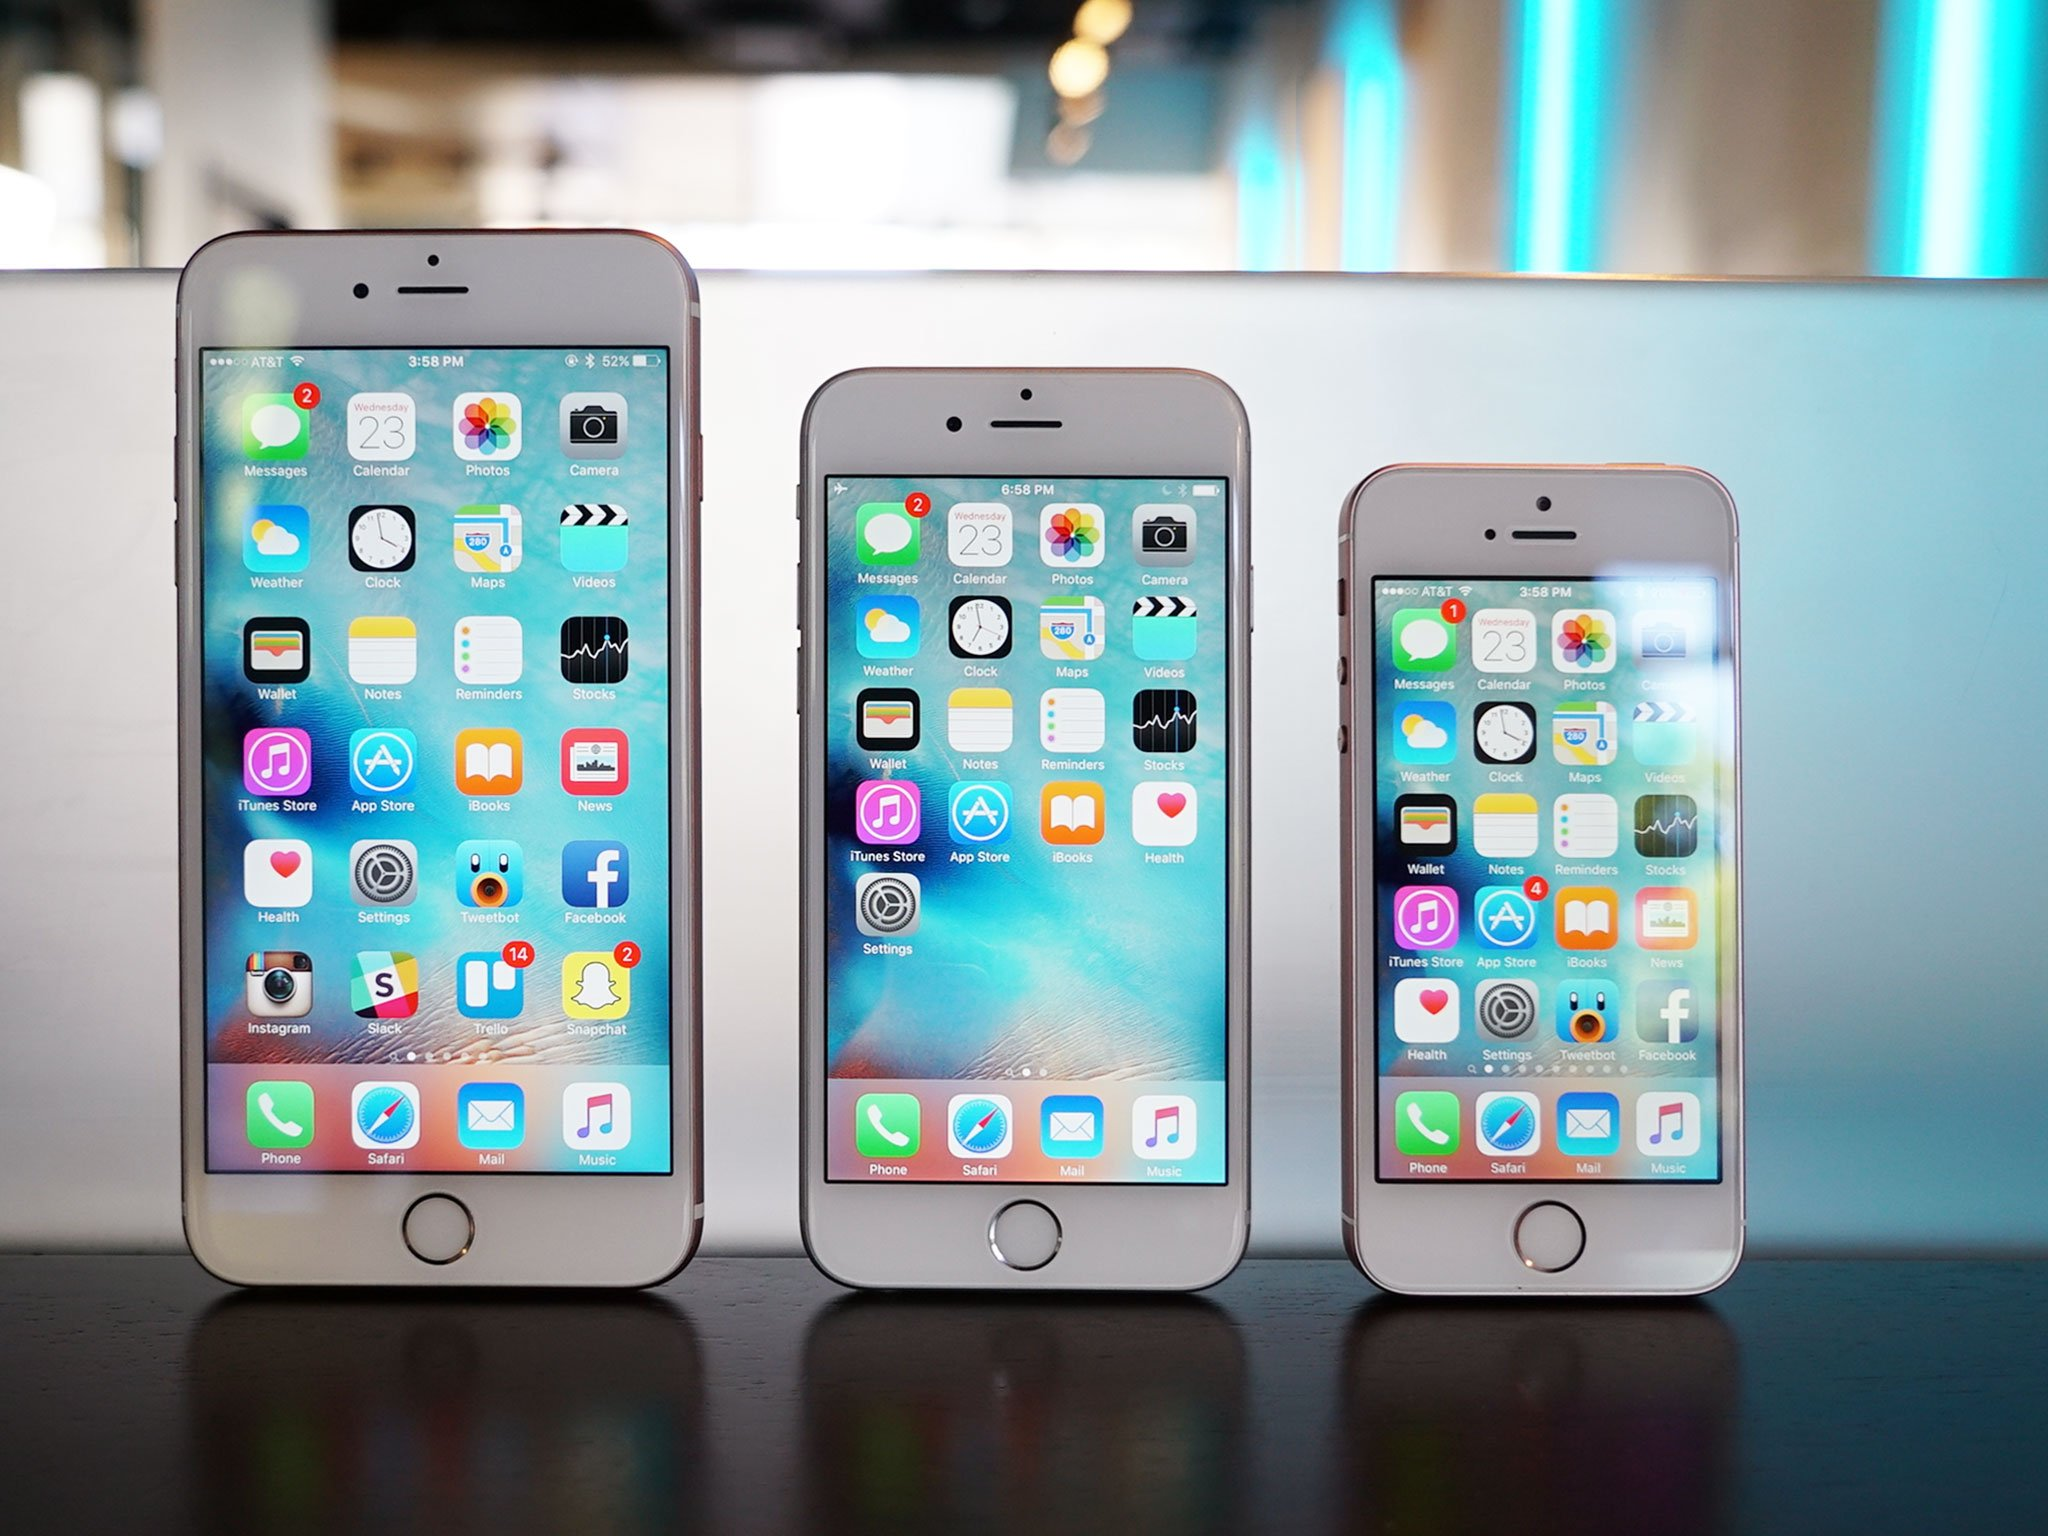 iPhone 6S vs iPhone SE: What's different and which should you choose? | iMore